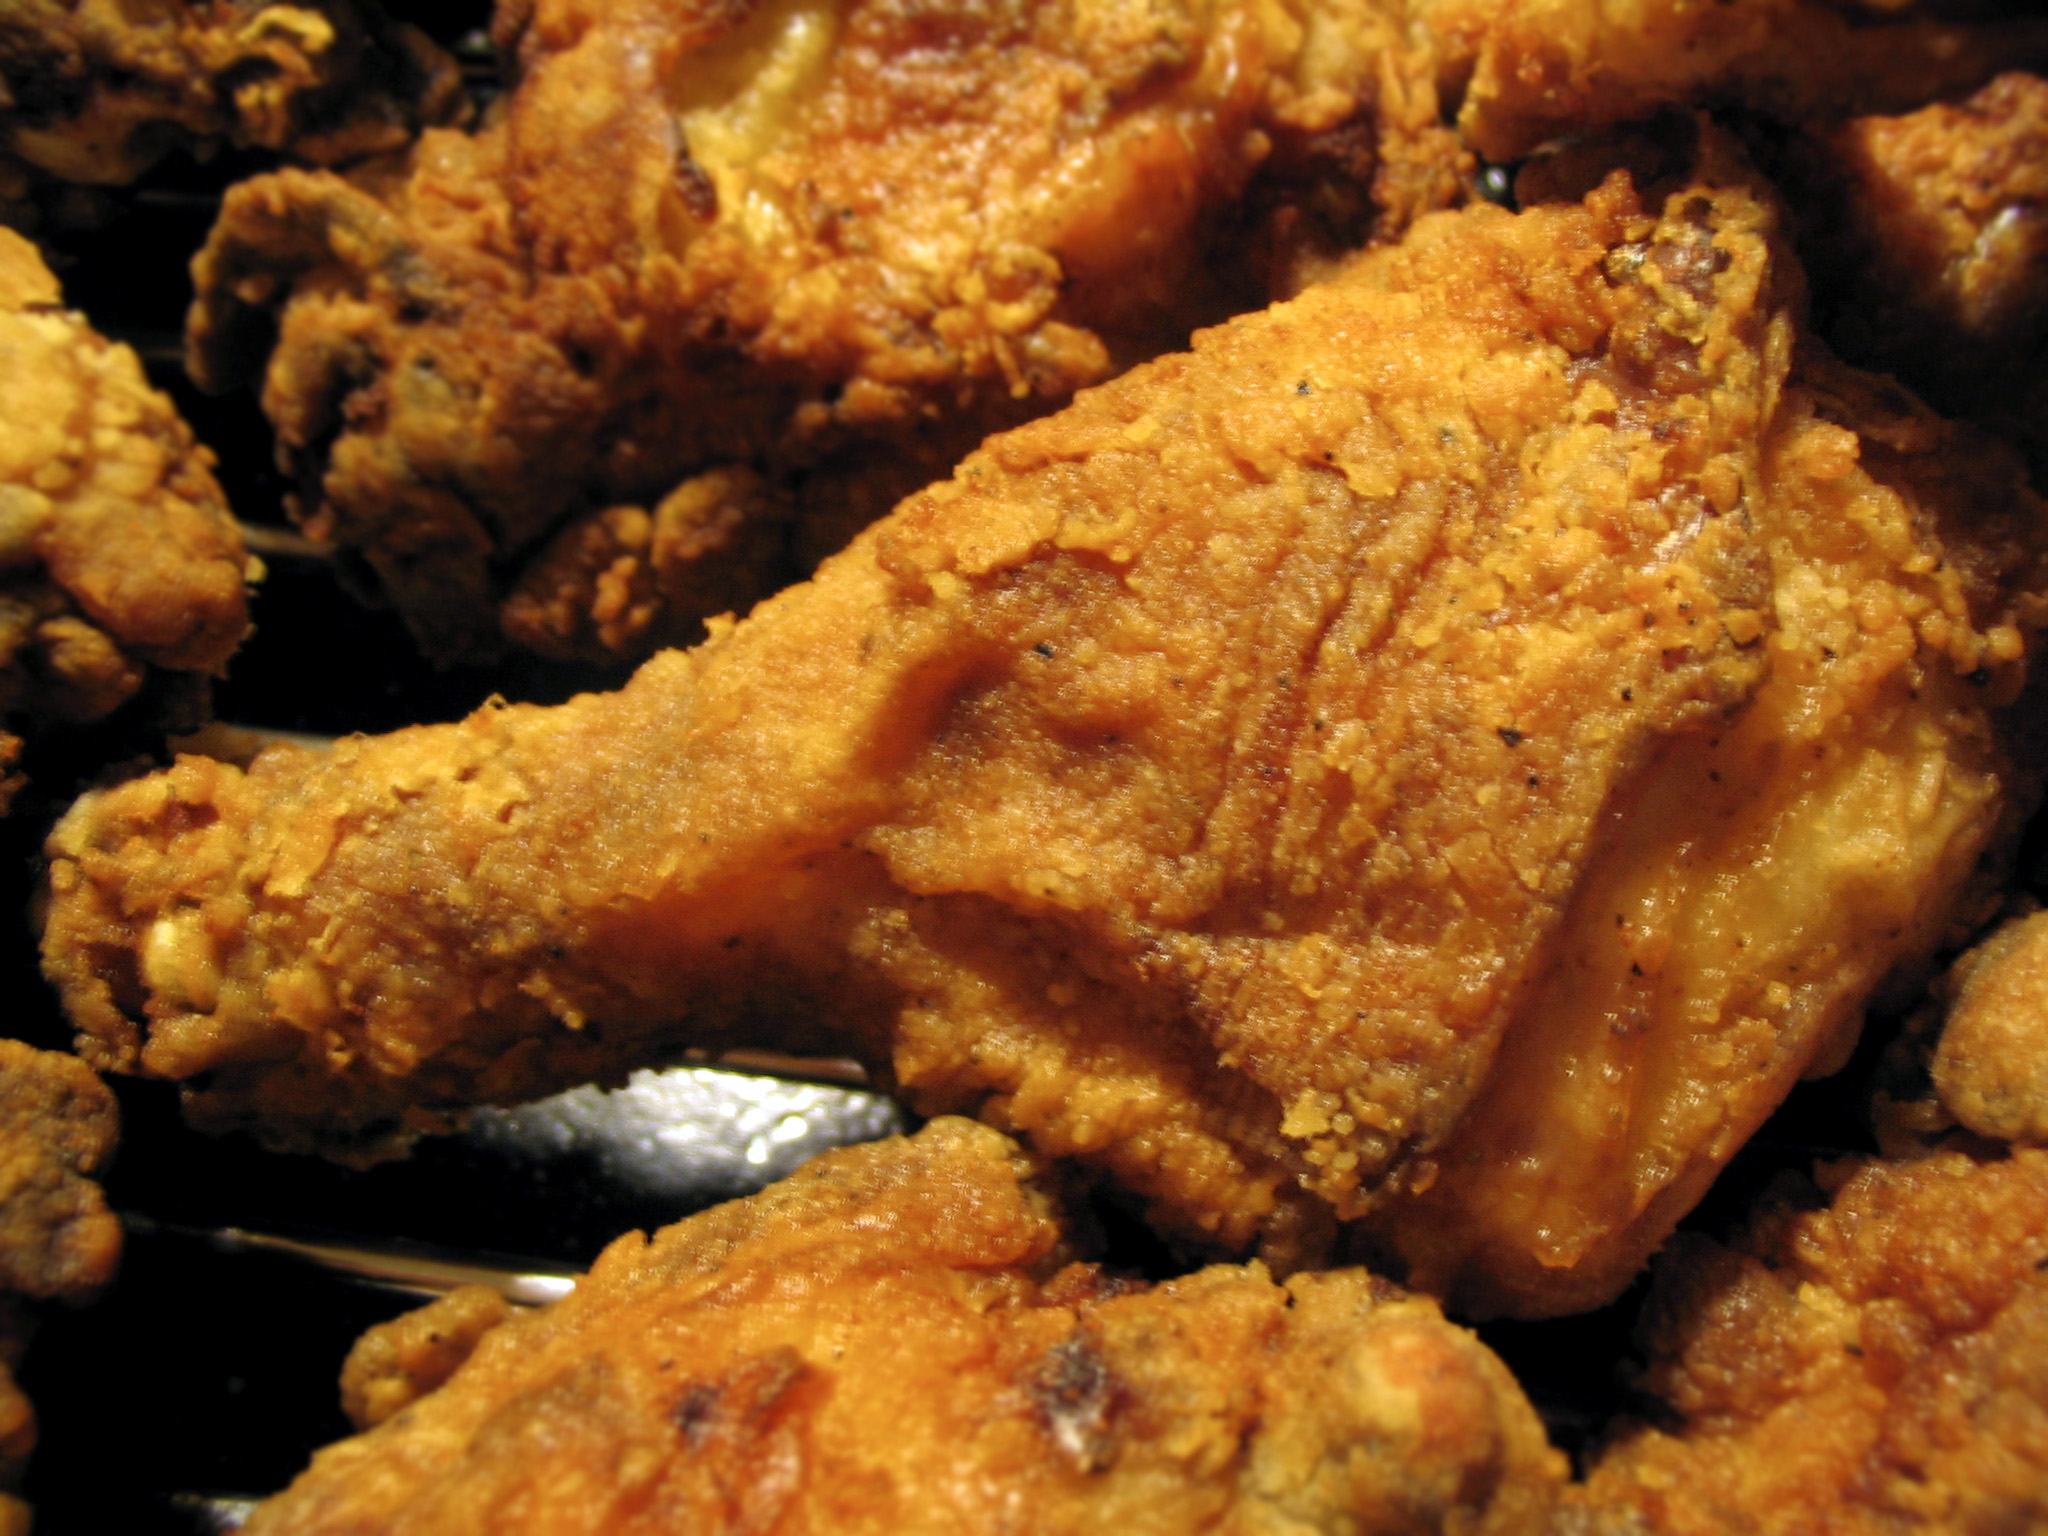 File:Friedchicken.jpg - Wikimedia Commons